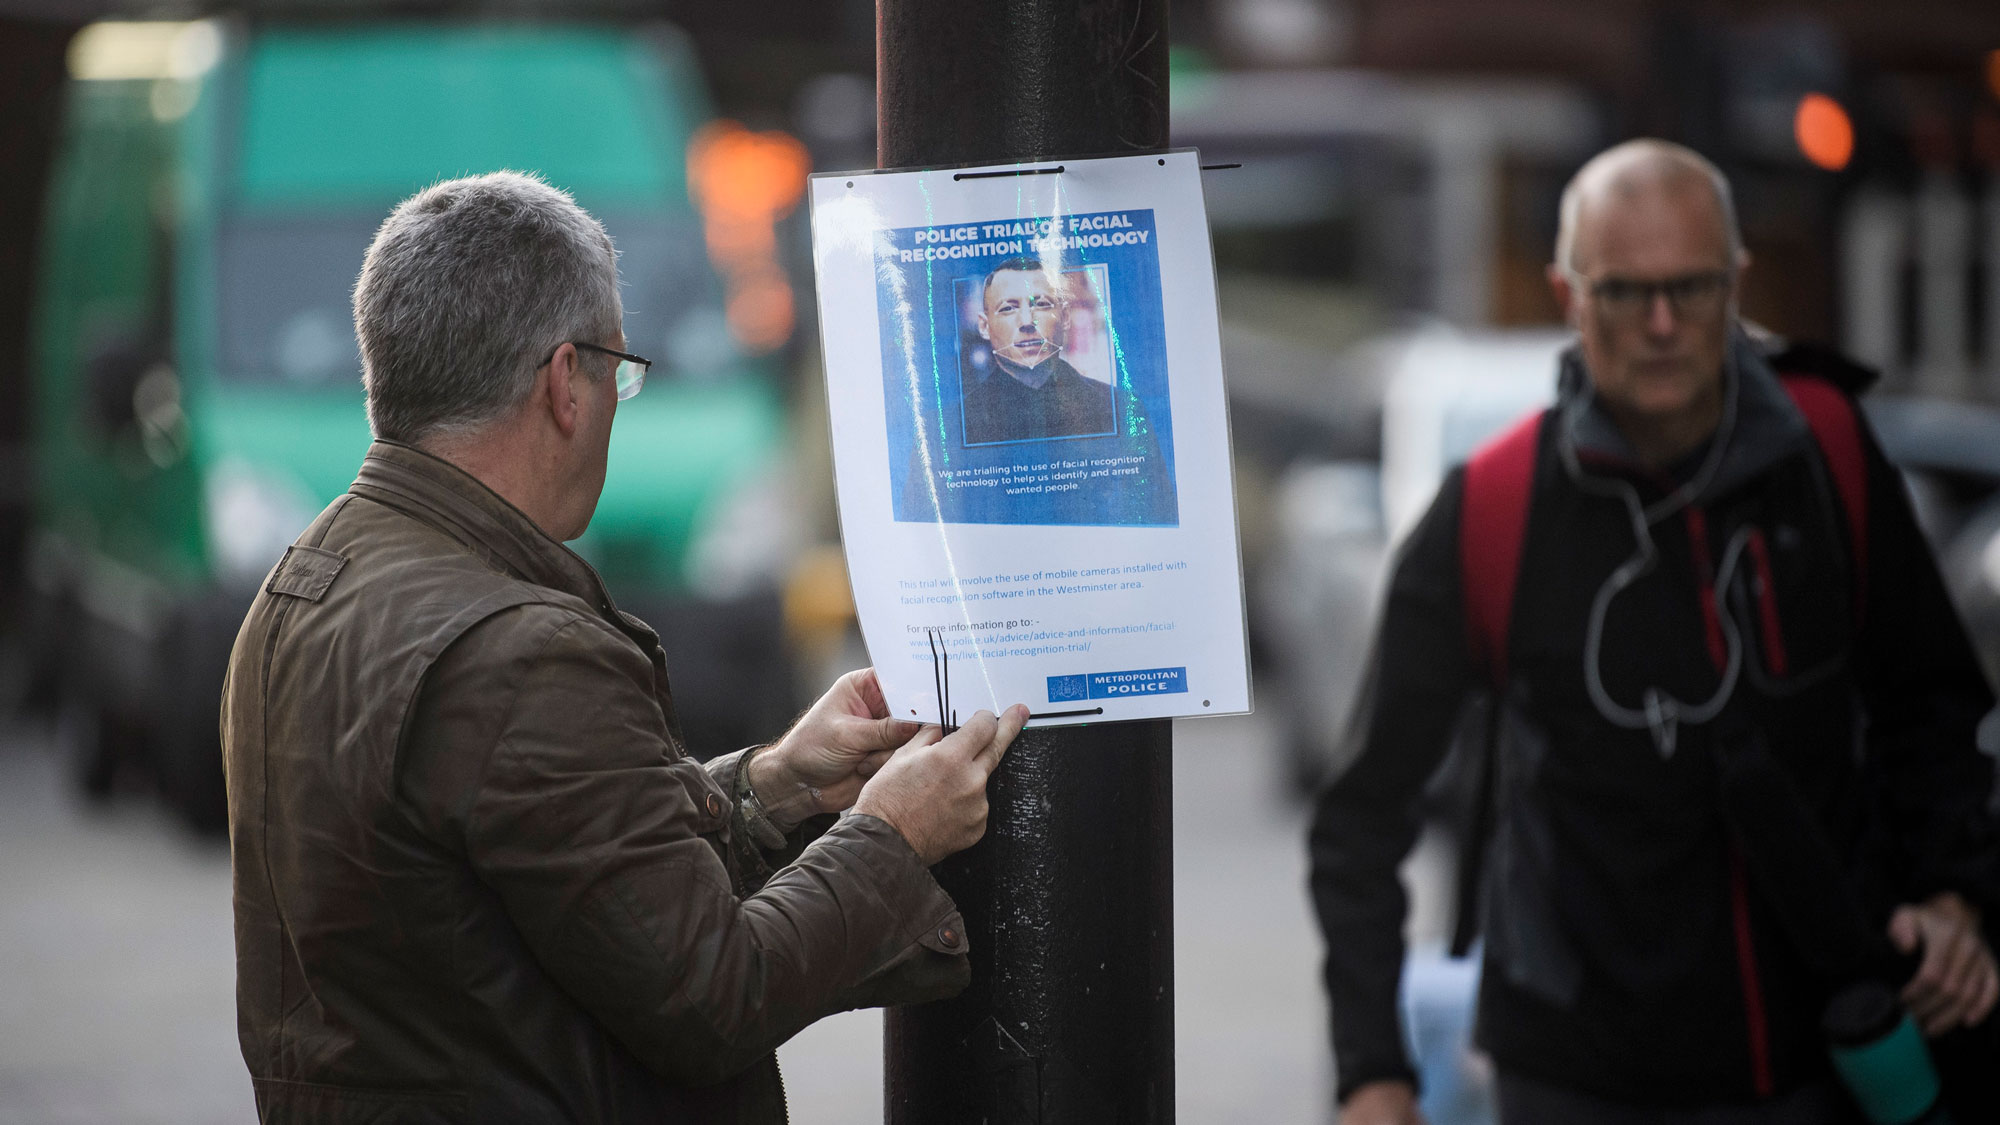 A man puts up a poster describing London's Metropolitan Police's face recognition system trial